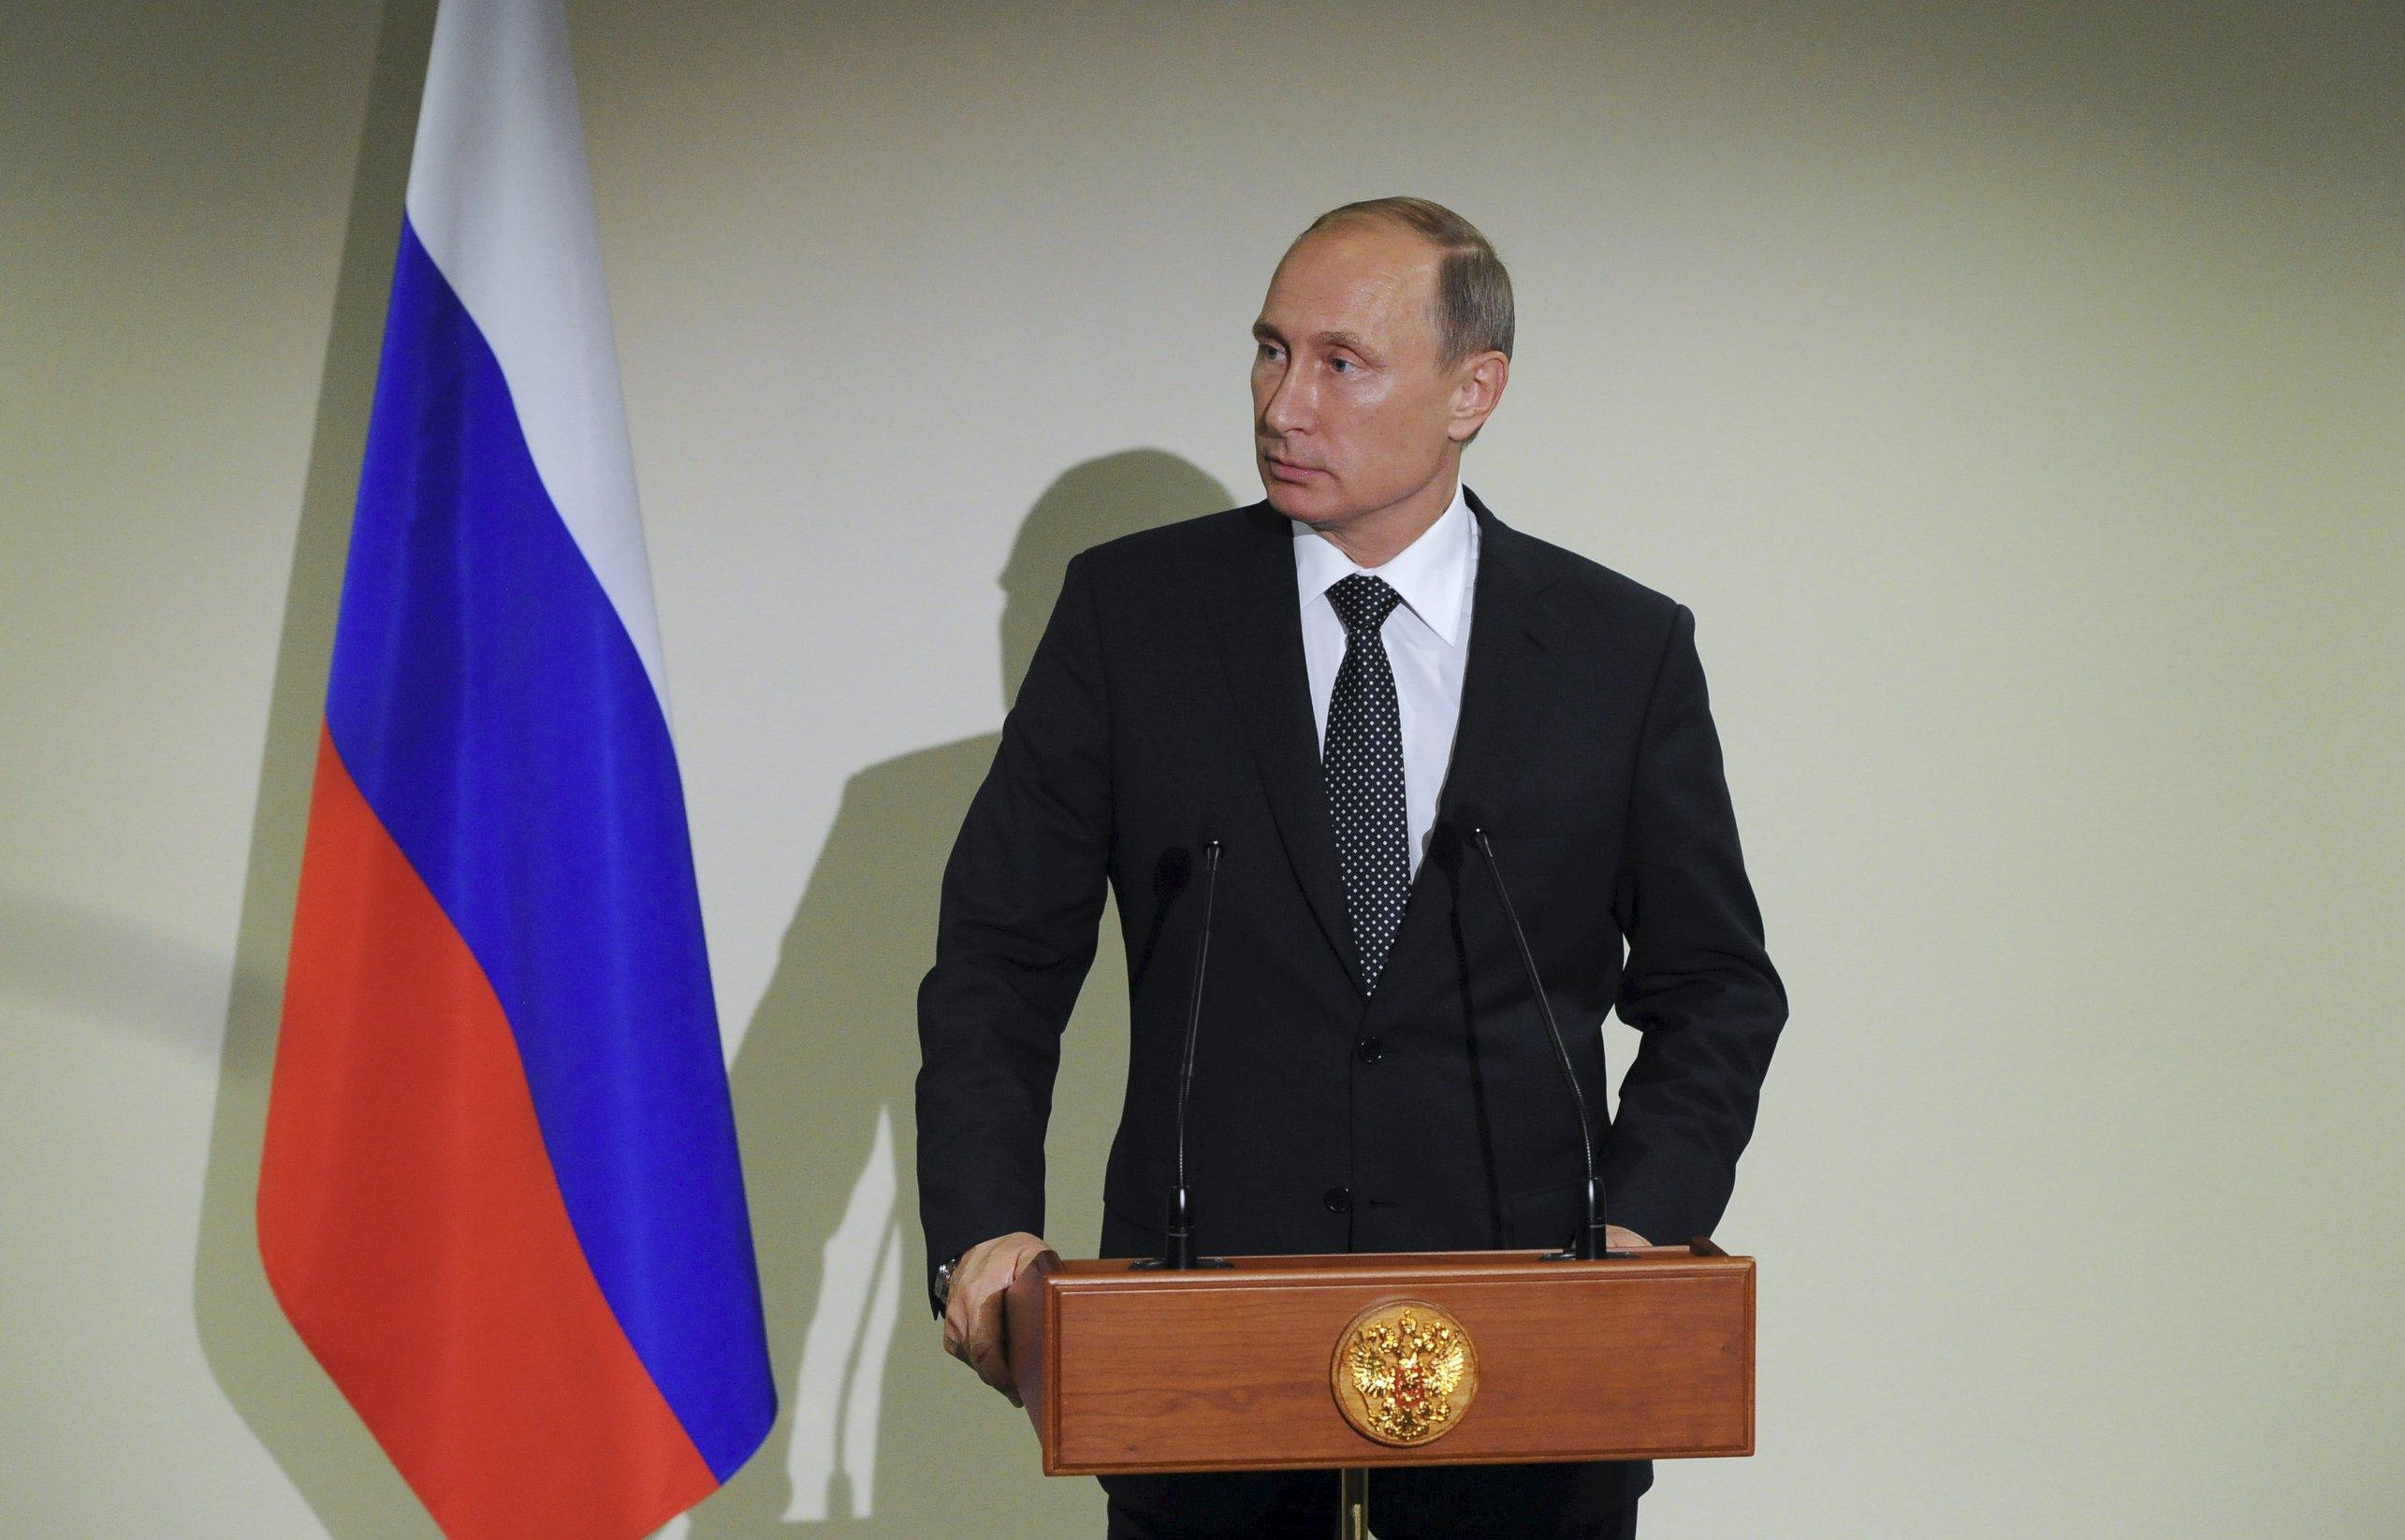 Russia's President Vladimir Putin speaks during a news conference at the United Nations General Assembly in New York, September 28, 2015. Picture taken September 28, 2015. REUTERS/Mikhail Klimentyev/RIA Novosti/Kremlin ATTENTION EDITORS - THIS IMAGE HAS BEEN SUPPLIED BY A THIRD PARTY. IT IS DISTRIBUTED, EXACTLY AS RECEIVED BY REUTERS, AS A SERVICE TO CLIENTS.